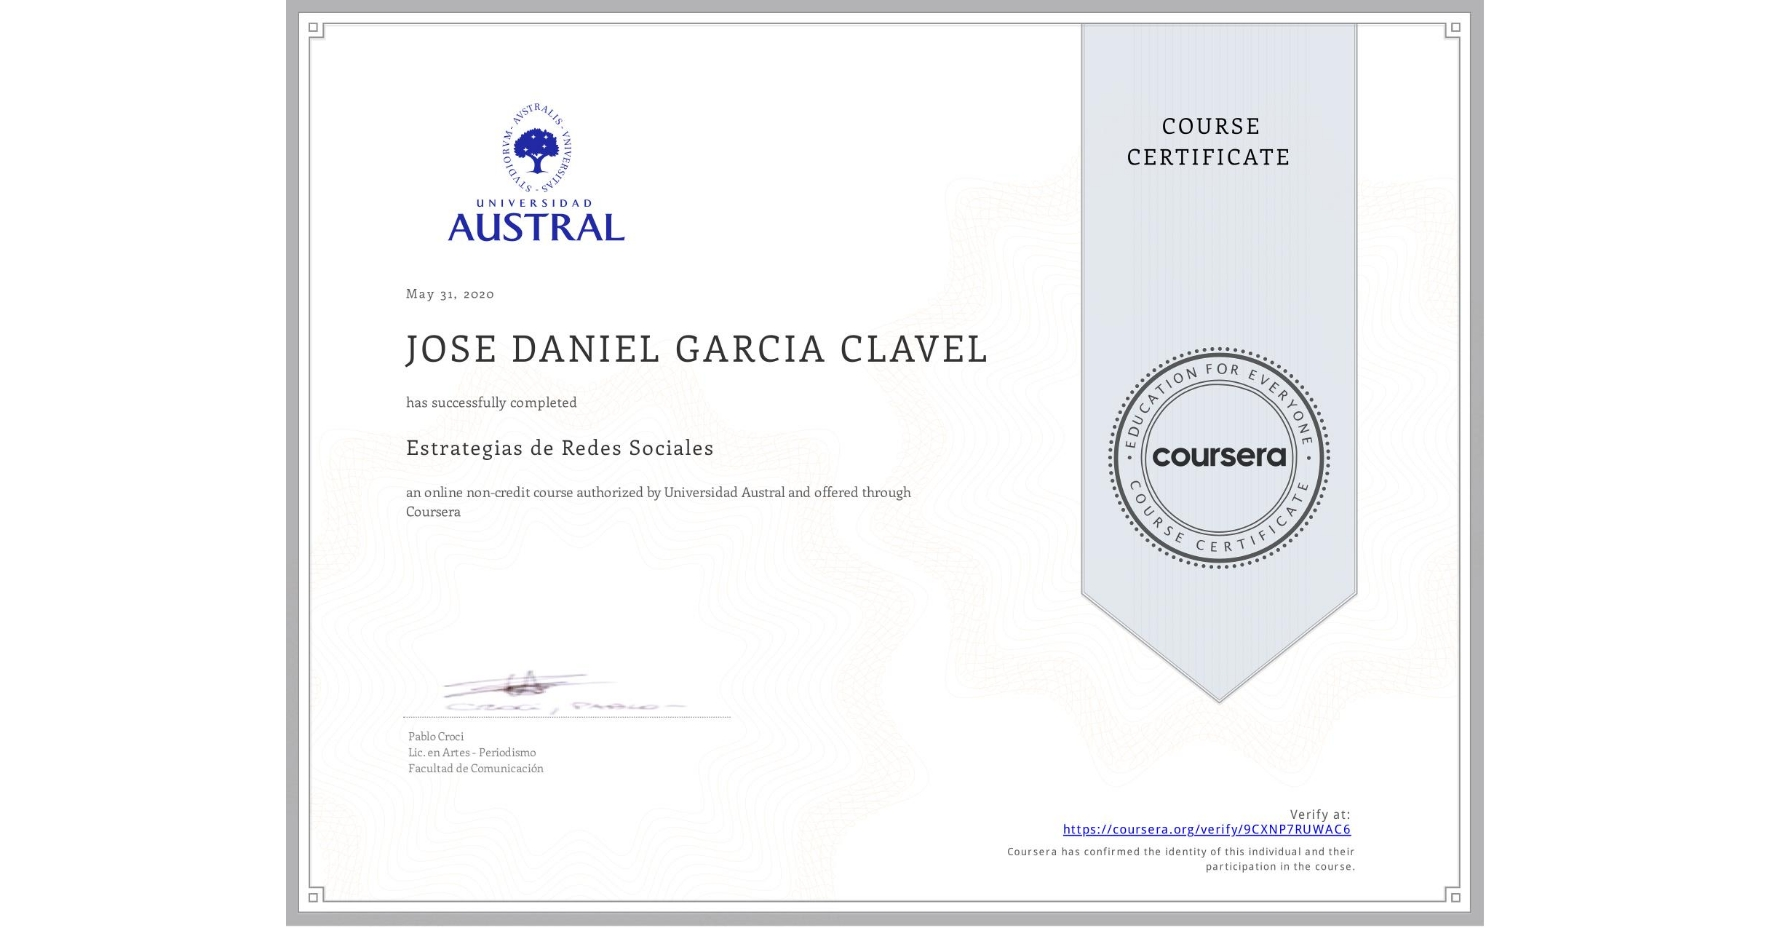 View certificate for JOSE DANIEL GARCIA CLAVEL, Estrategias de  Redes Sociales, an online non-credit course authorized by Universidad Austral and offered through Coursera